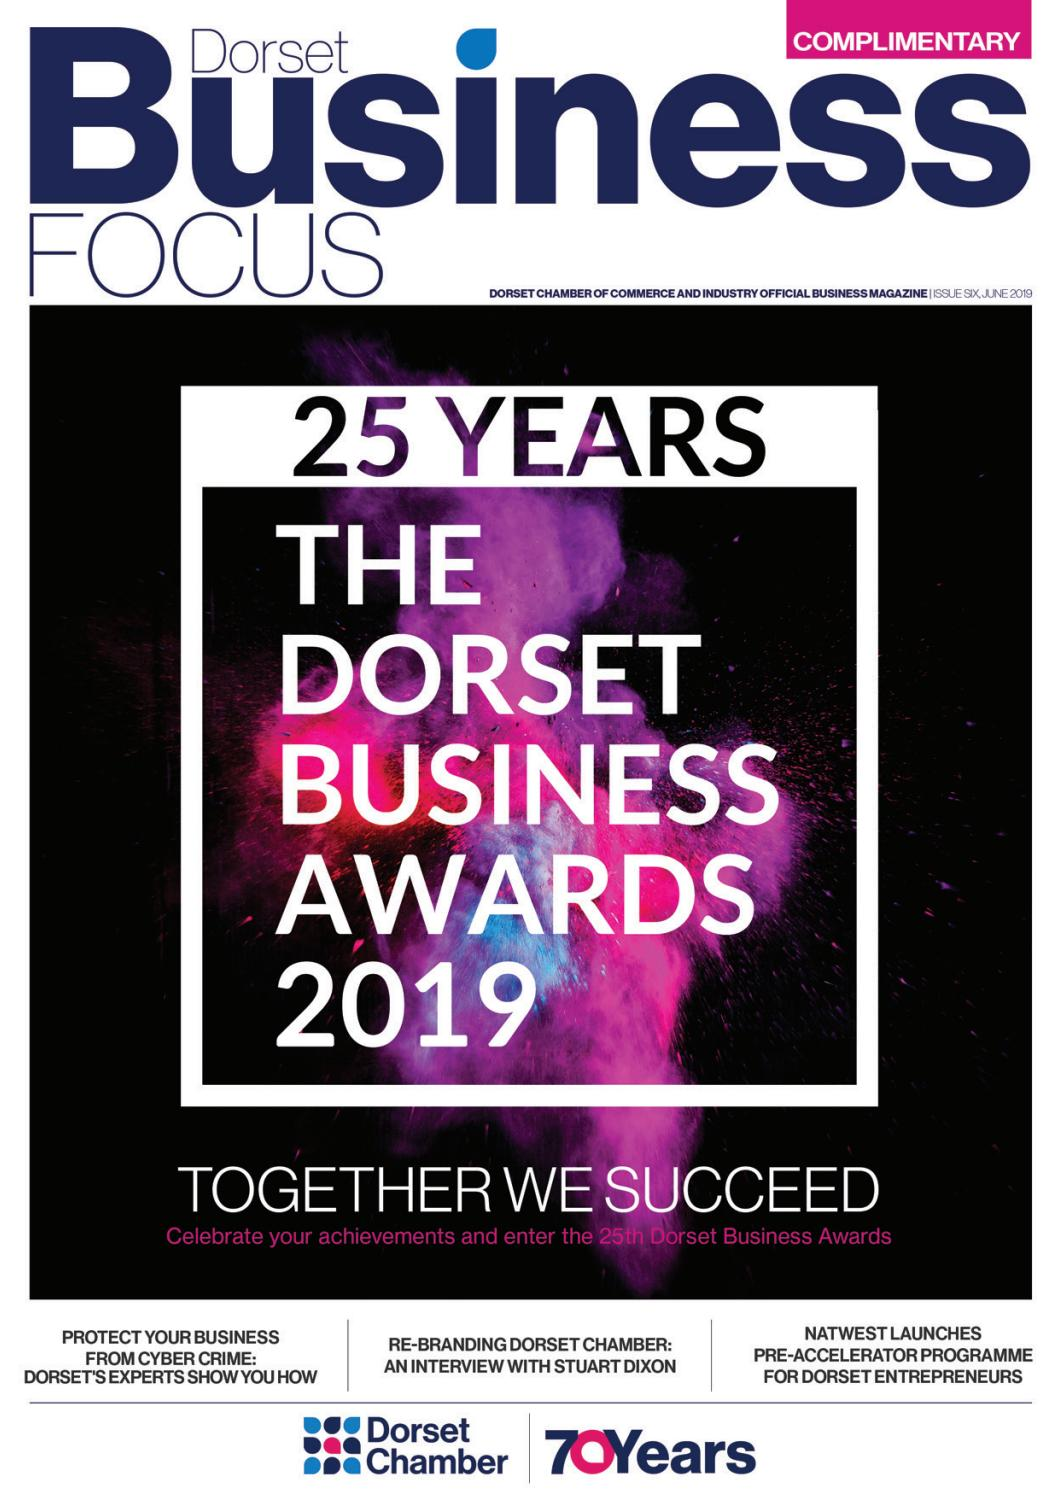 9517f091b62e Dorset Business Focus - June 2019 by mags4dorset - issuu